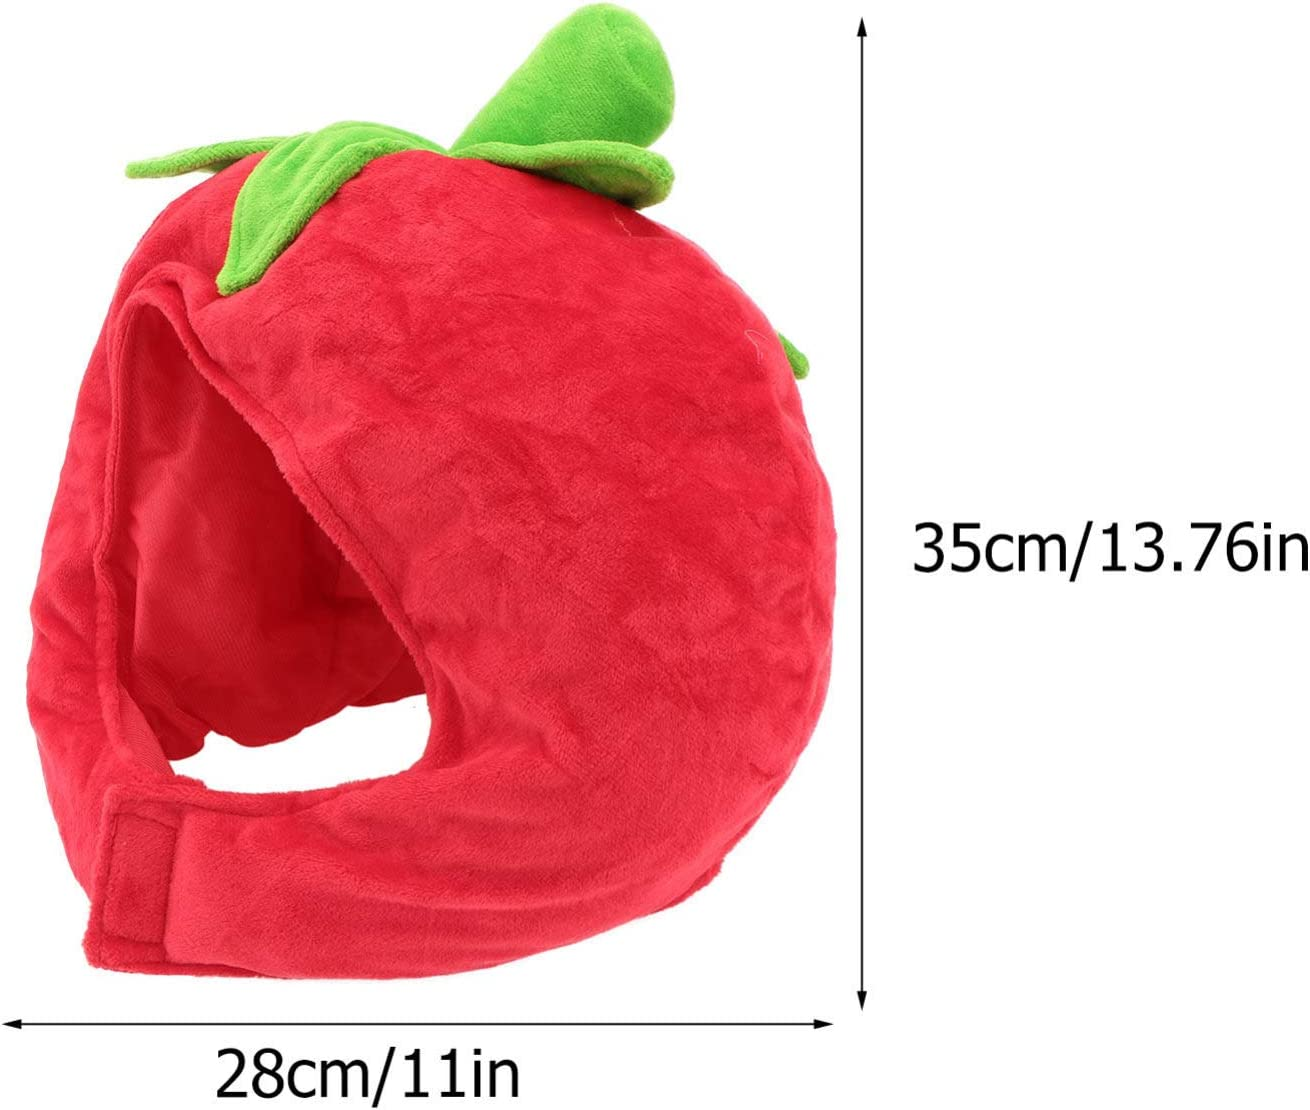 SOLUSTRE Funny Party Hat Tomato Shaped Costume Plush Novelty Fruits Headgear for Carnival Party Cosplay Hood Hat